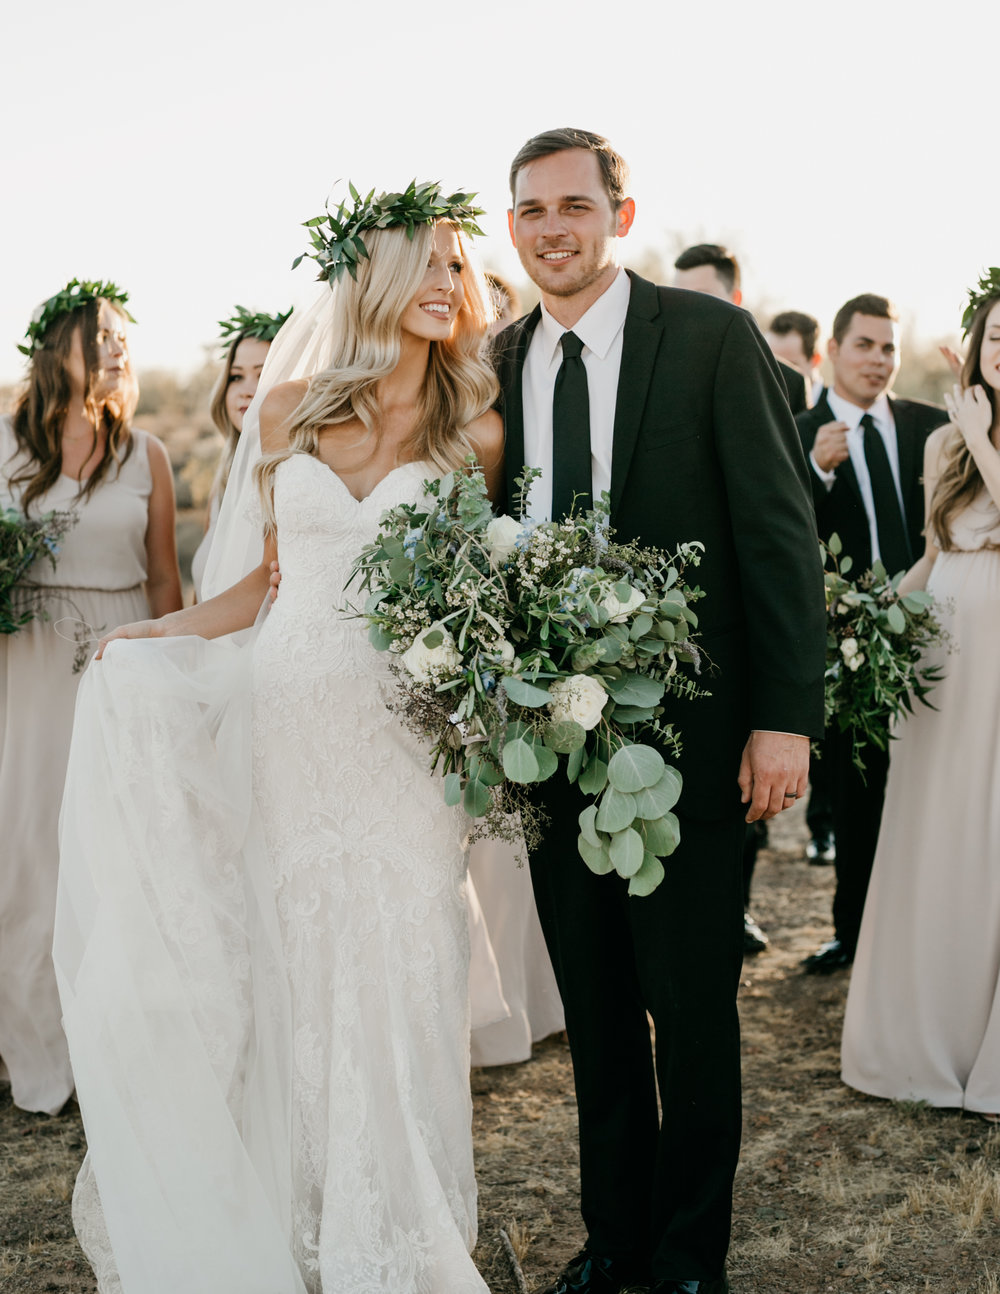 All You Need is Love and Doughnuts!  - with Tremaine Ranch - Arizona Wedding & Event, Vintage, Furniture, Tableware, & Specialty Rentals in Phoenix, Tucson, Flagstaff, Sedona, Tempe, Chandler, Mesa, Gilbert, Prescott, Payson31.jpg